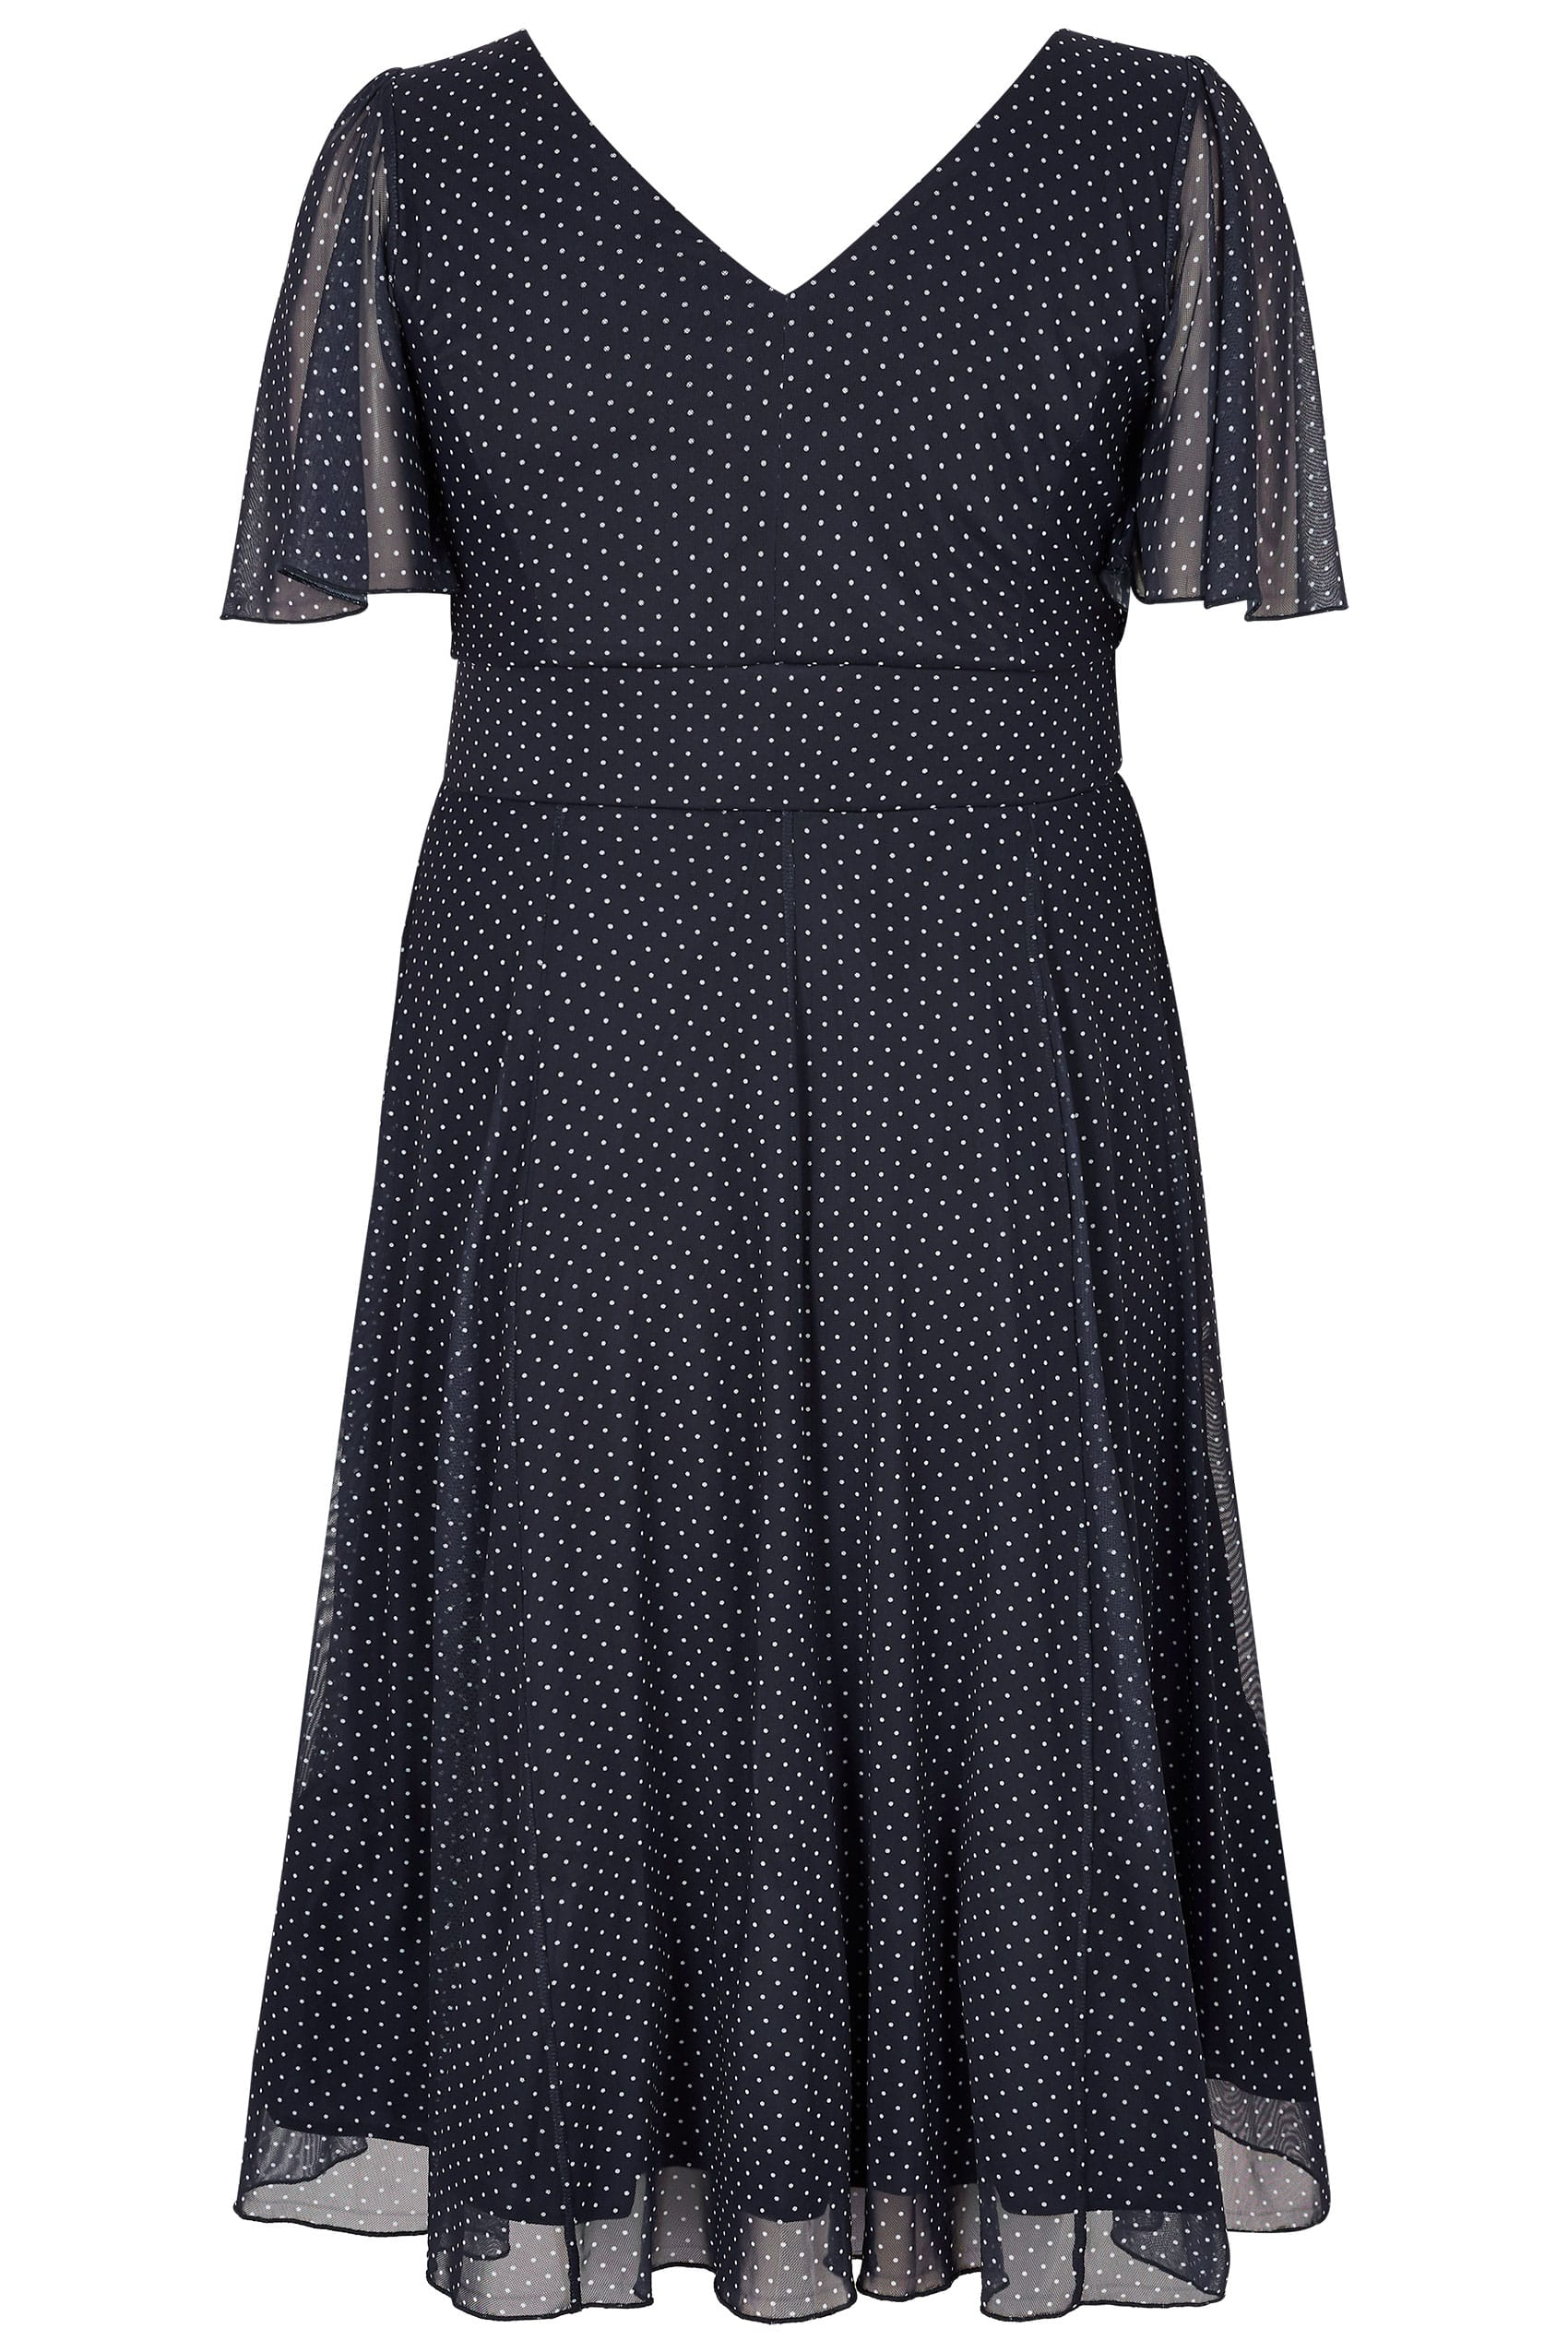 SCARLETT & JO Navy & White Polka Dot Midi Dress With Angel ...